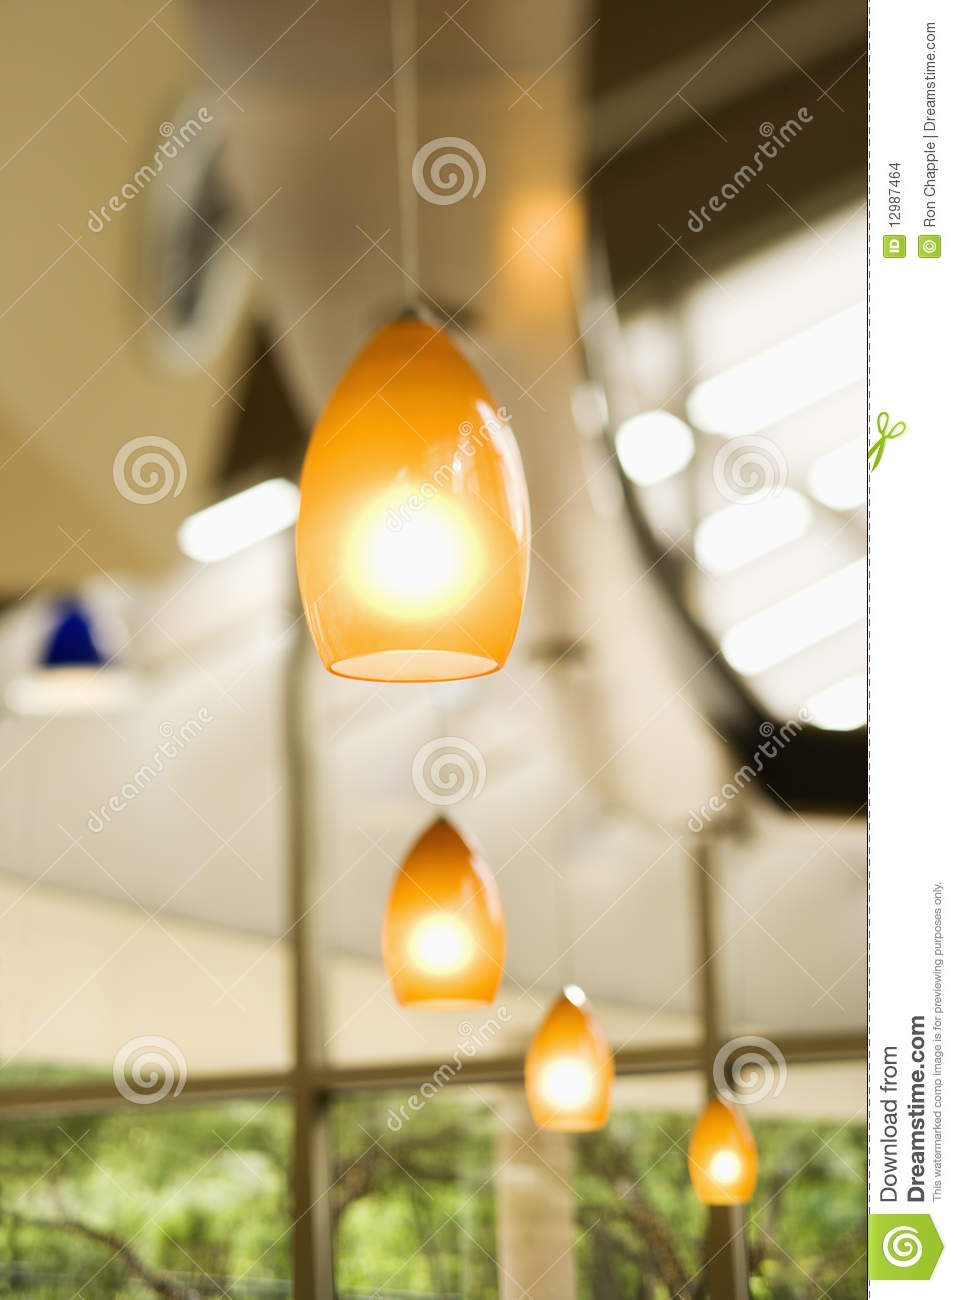 Row Of Hanging Lights Stock Images - Image: 12987464:Row of Hanging Lights,Lighting